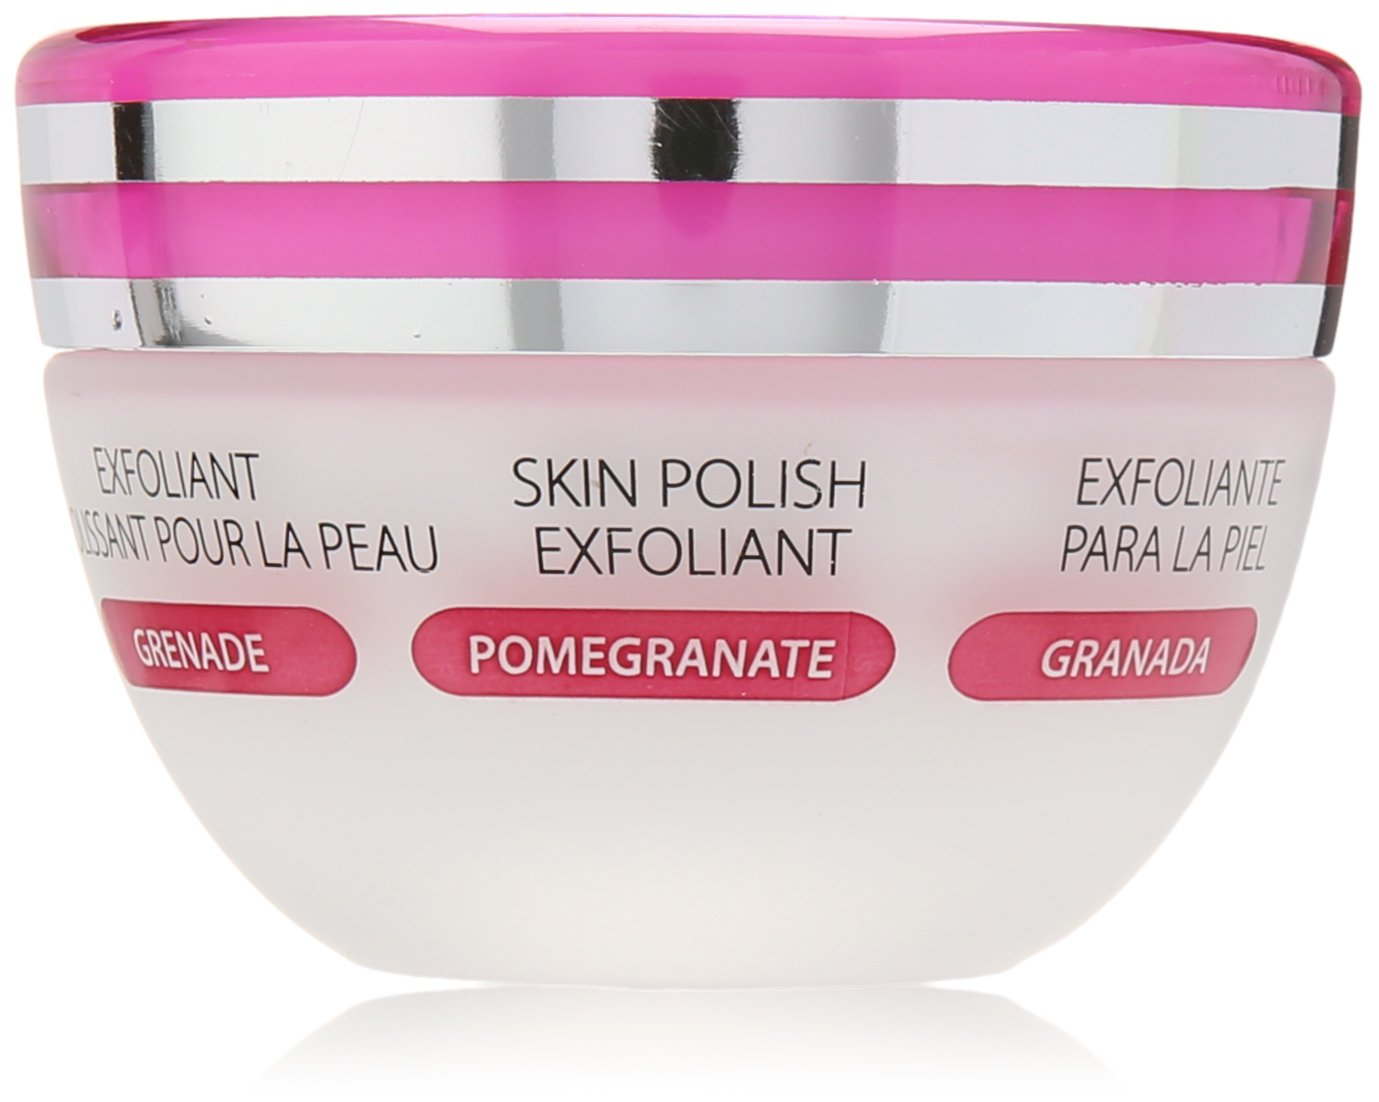 Barielle Essentials Skin Polish Exfoliant with Pomegranate, 1.5 Ounce